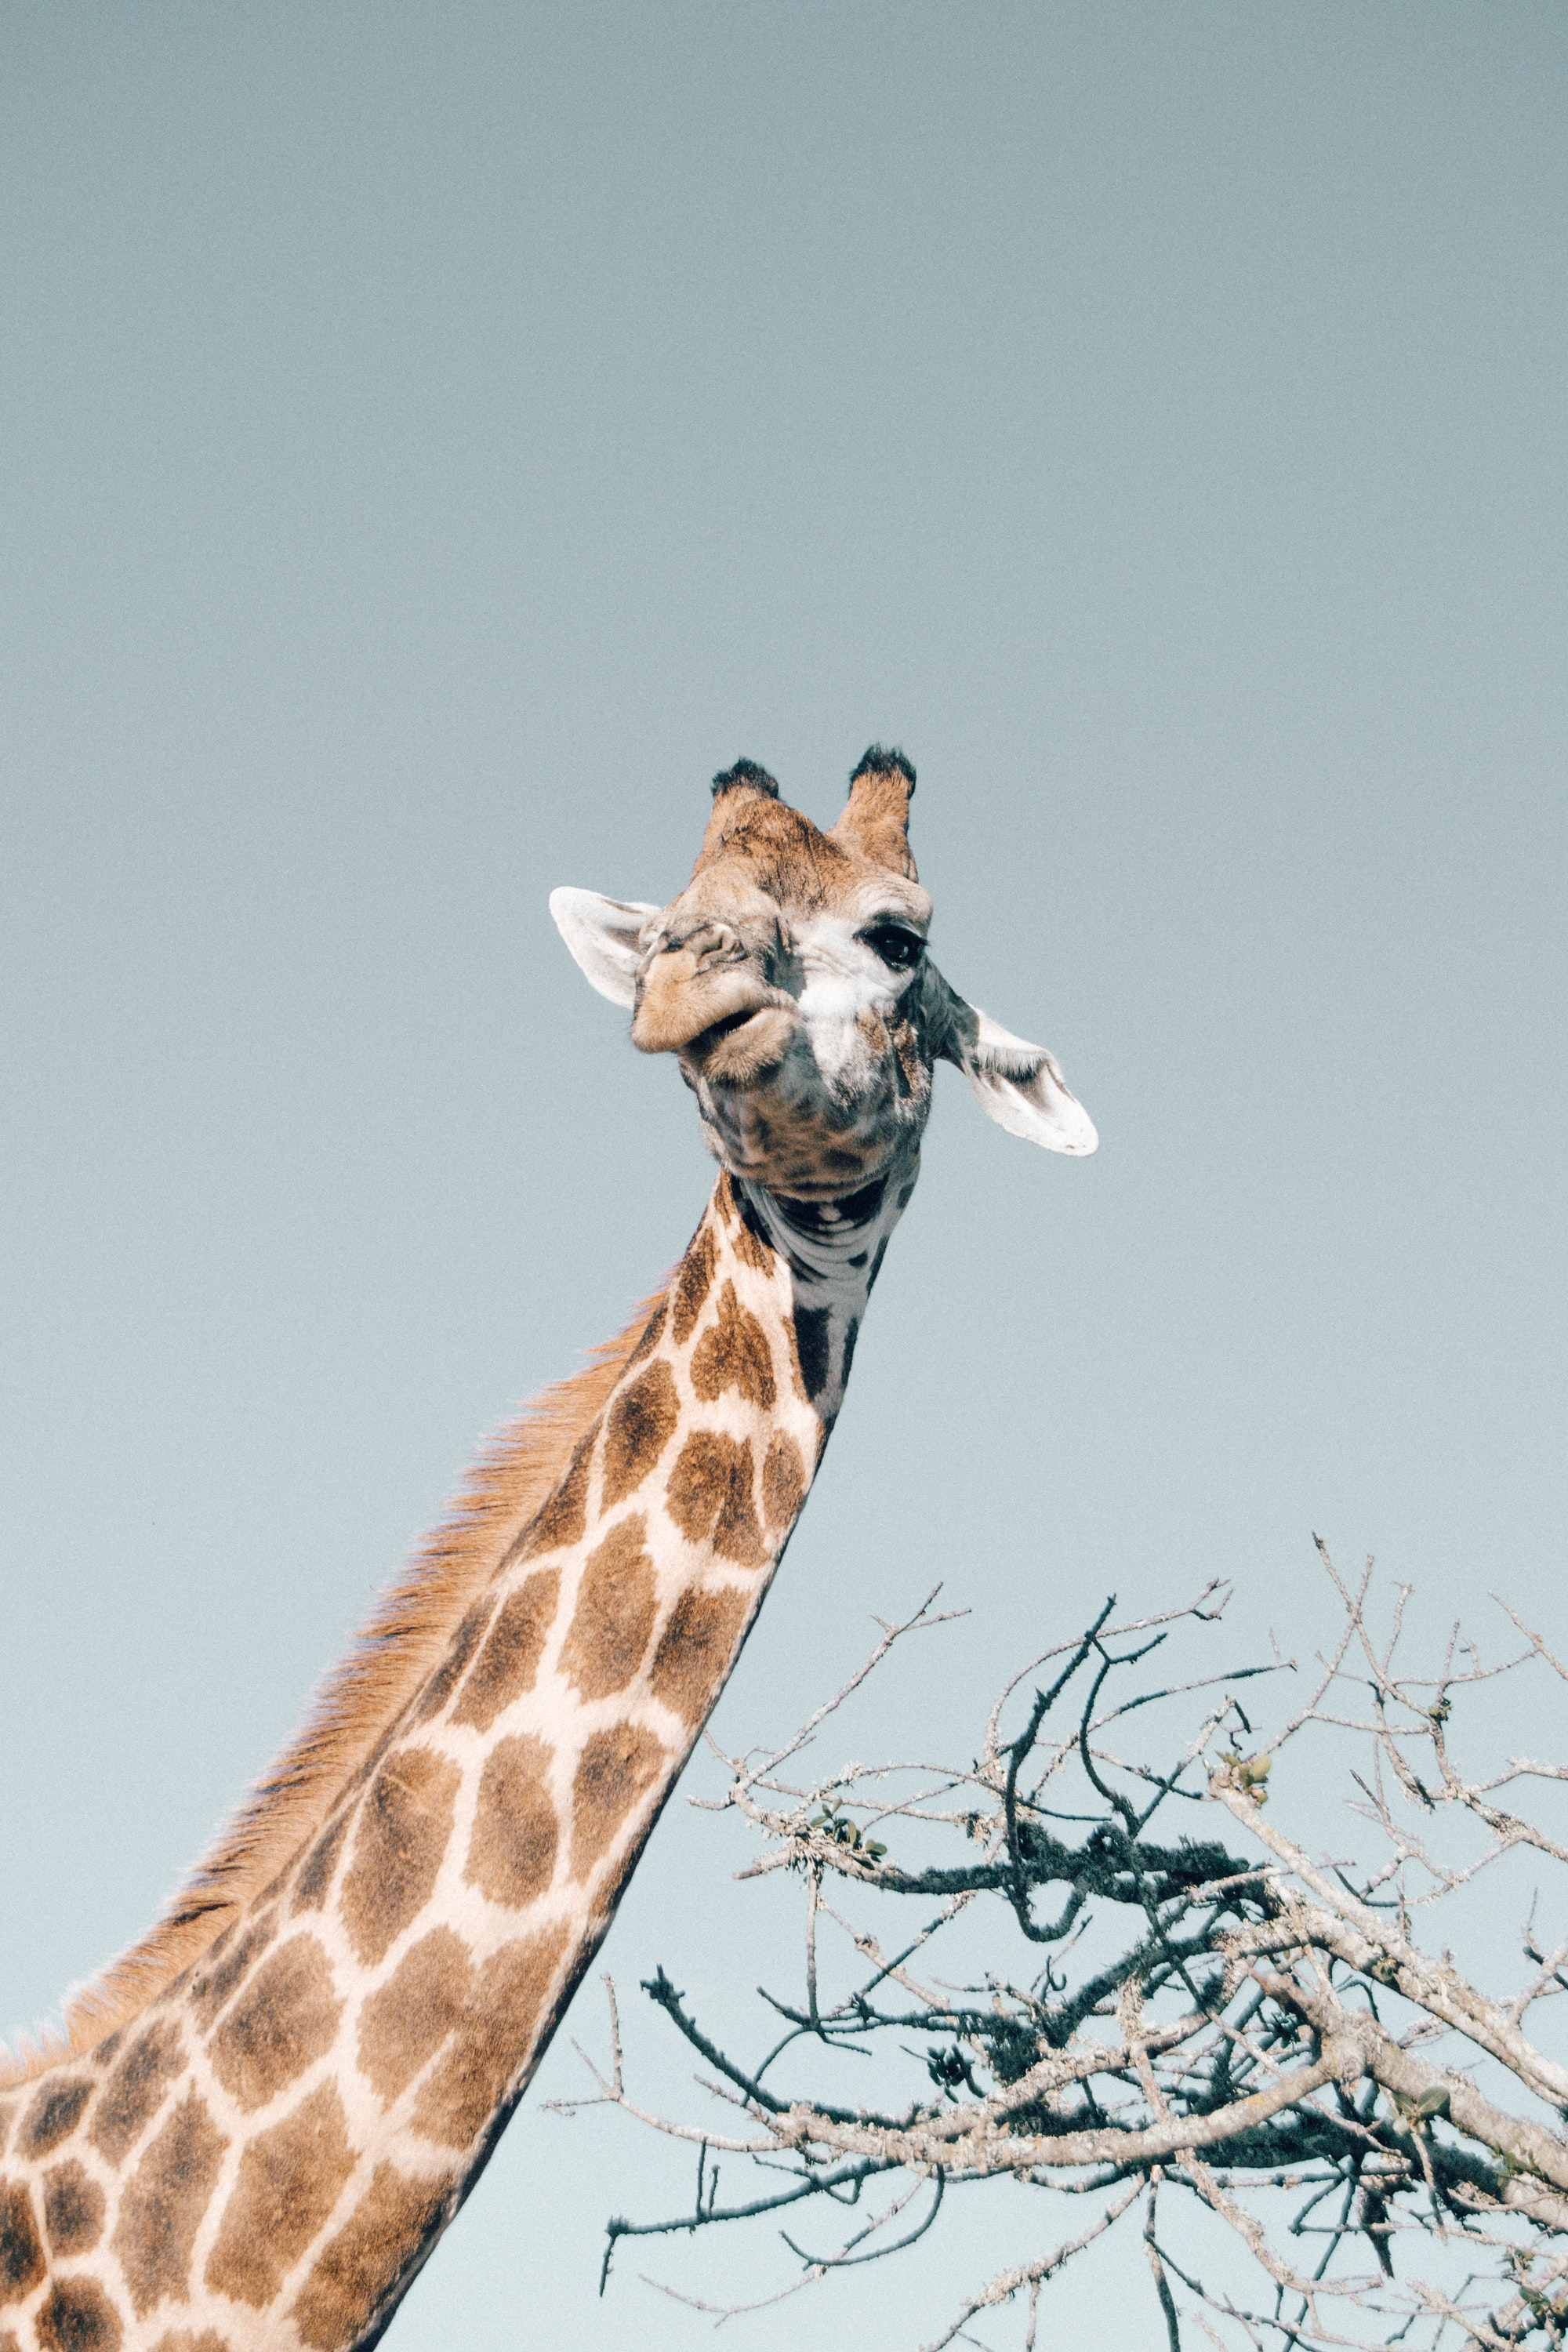 low-angle photo of giraffe